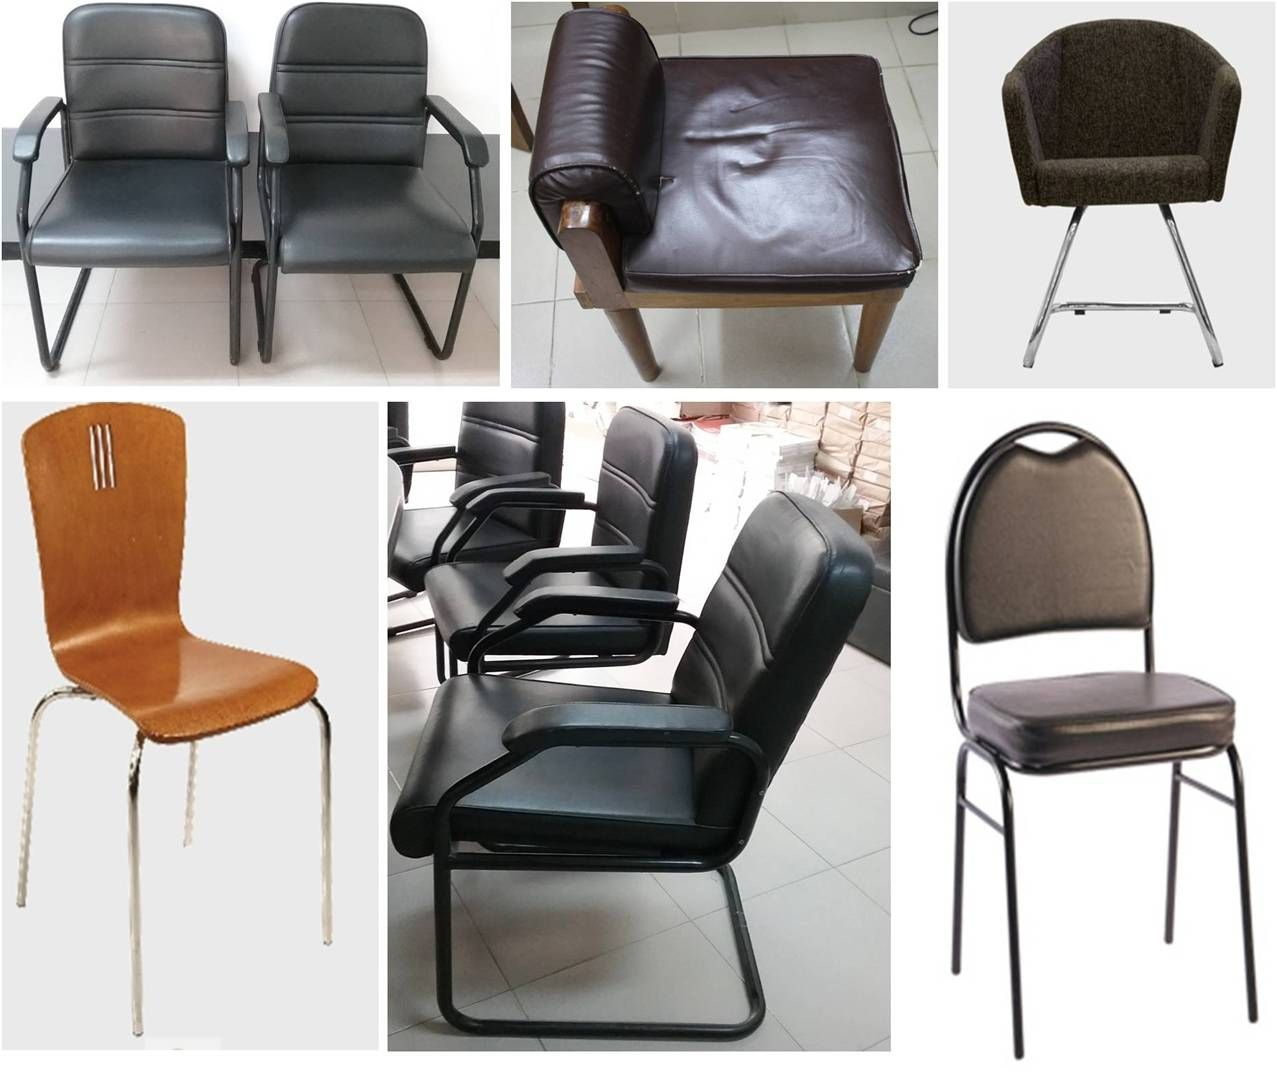 navana revolving chair price in bangladesh wingback covers uk visitor manufacturer and vendor hatil regal otobi size seat 350x410 back 350x230 height floor to 400mm 800mm